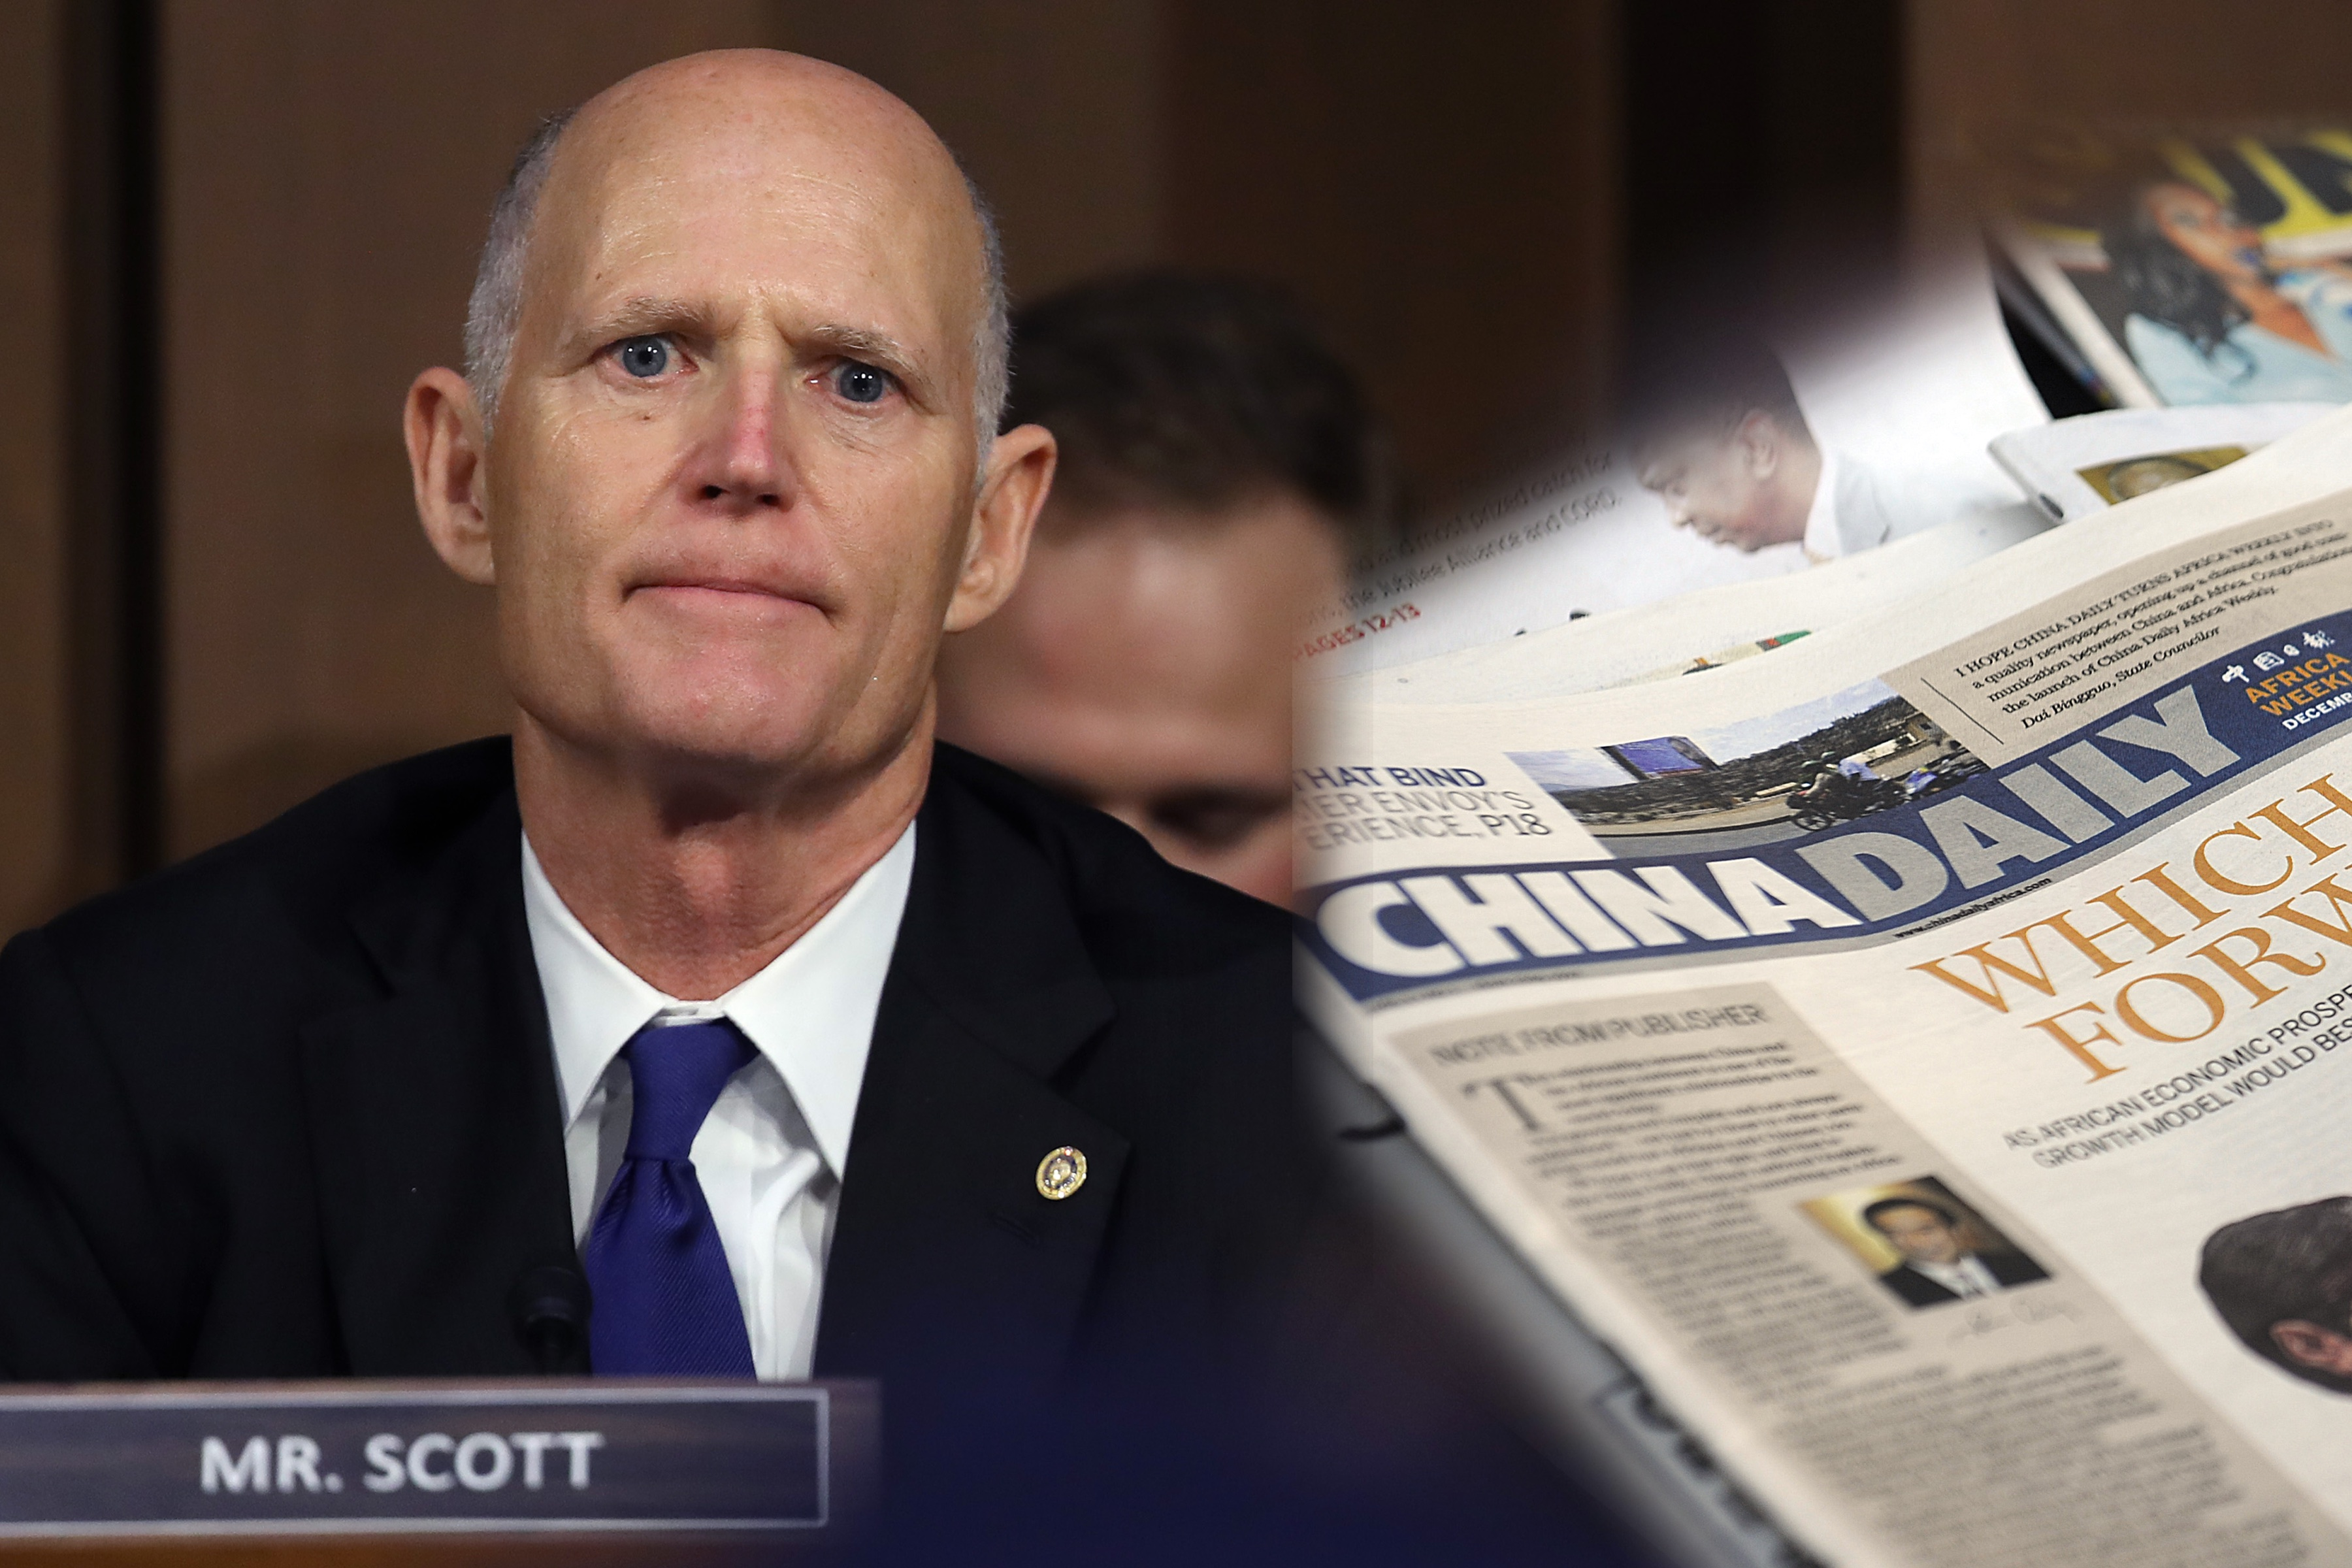 US Newspapers Publish Communist Propaganda at Expense of American Values: Sen. Scott